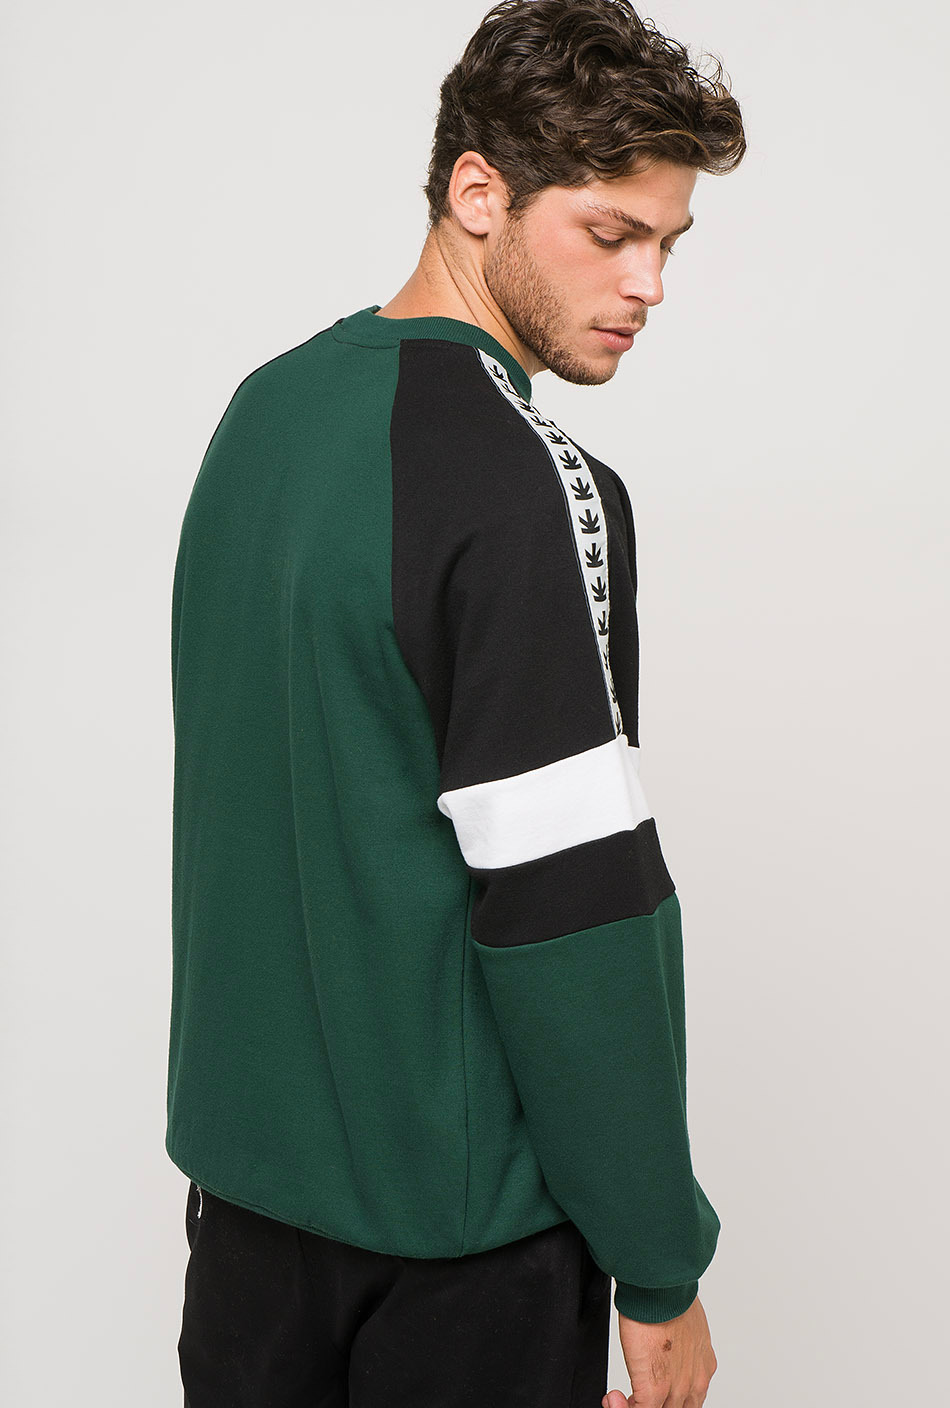 Hunter green/black sweatshirt